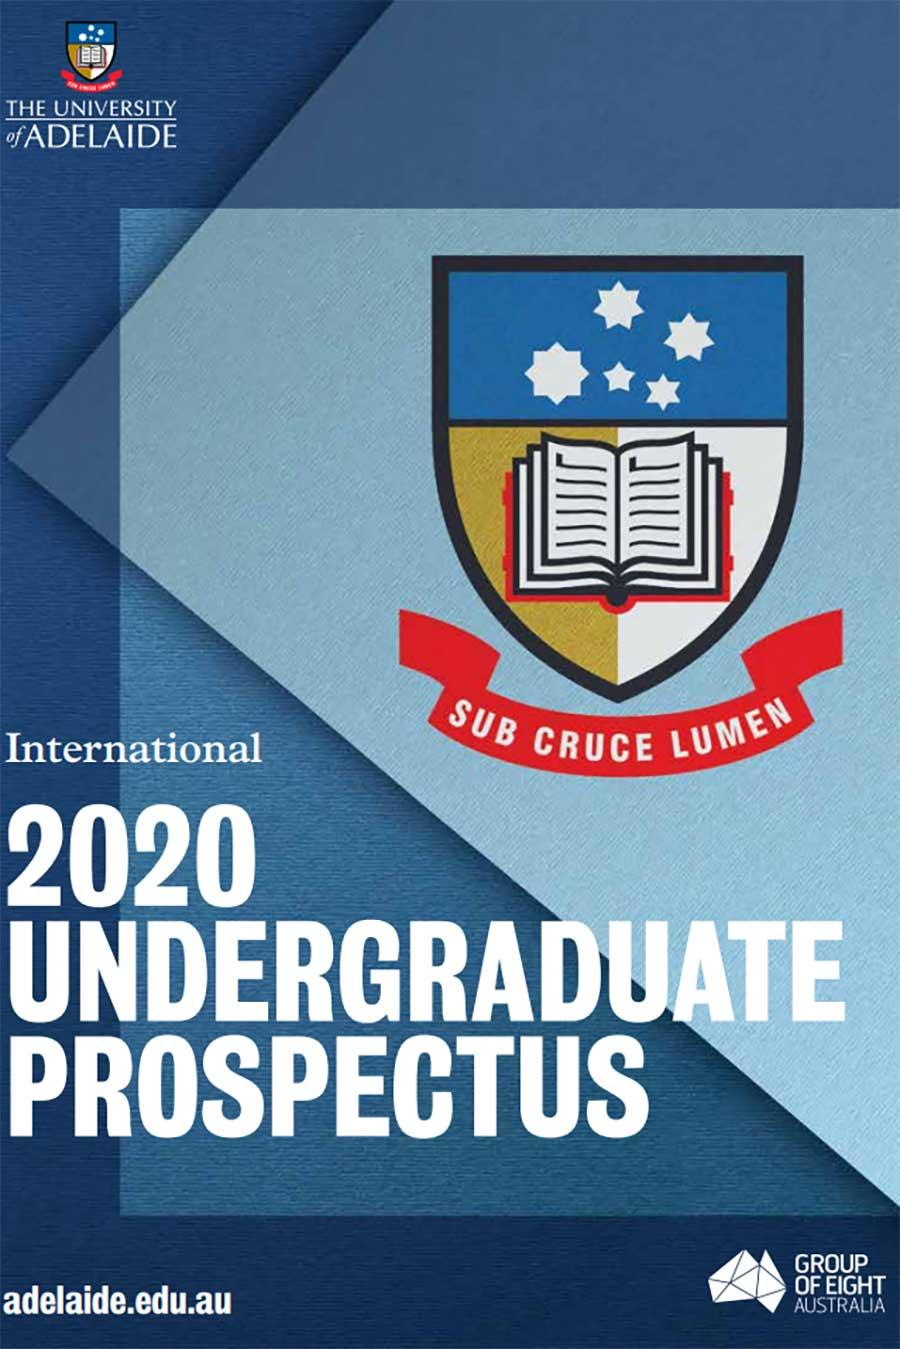 International Undergraduate Prospectus 2020